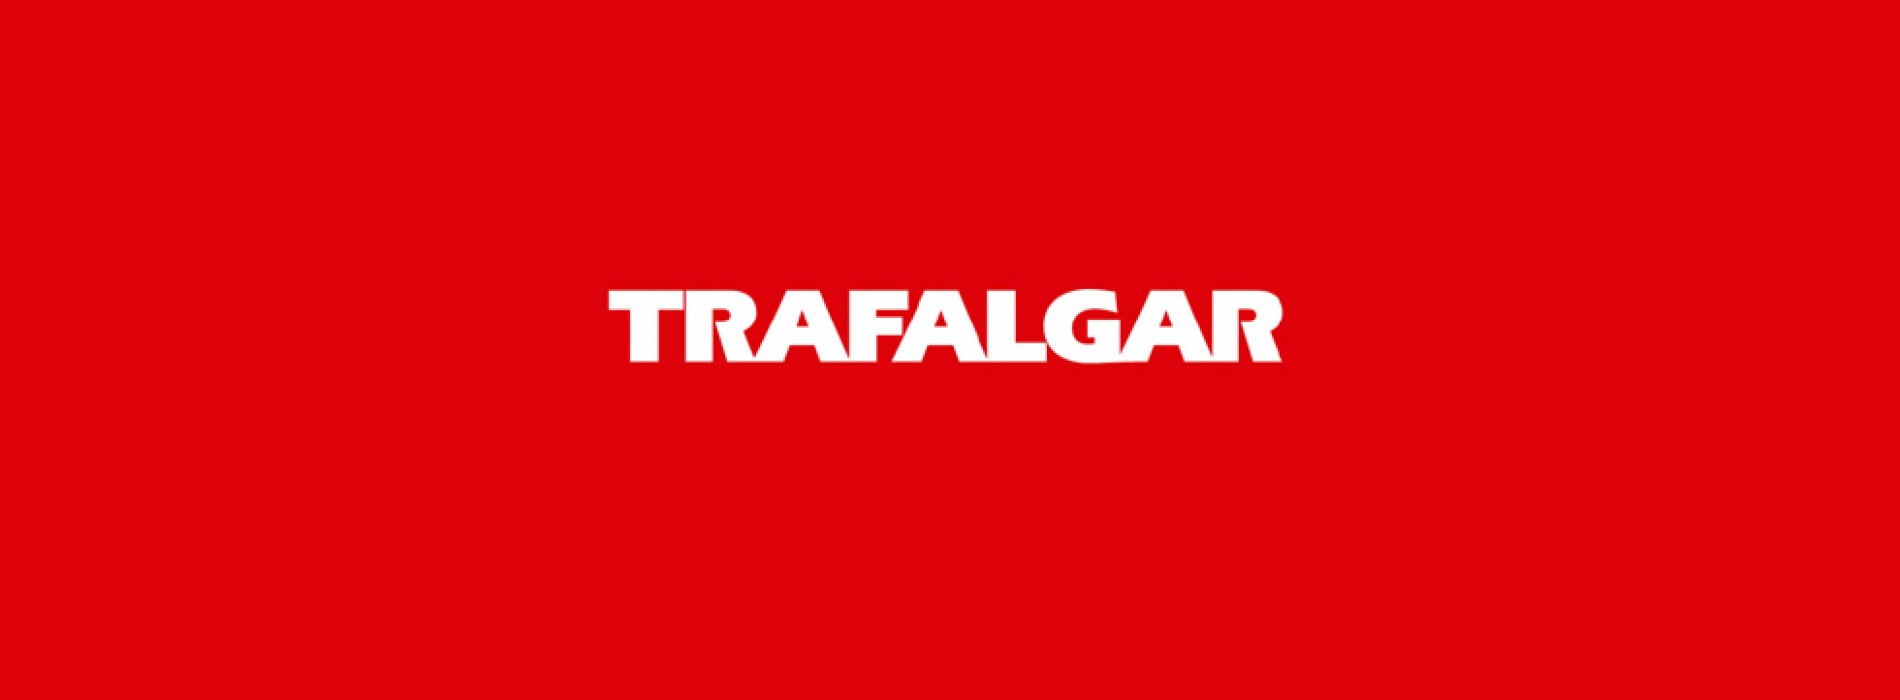 Trafalgar guarantees a winning year ahead for agents with 100% of Europe & Britain plus all Asia Departures confirmed as Definite for 2017